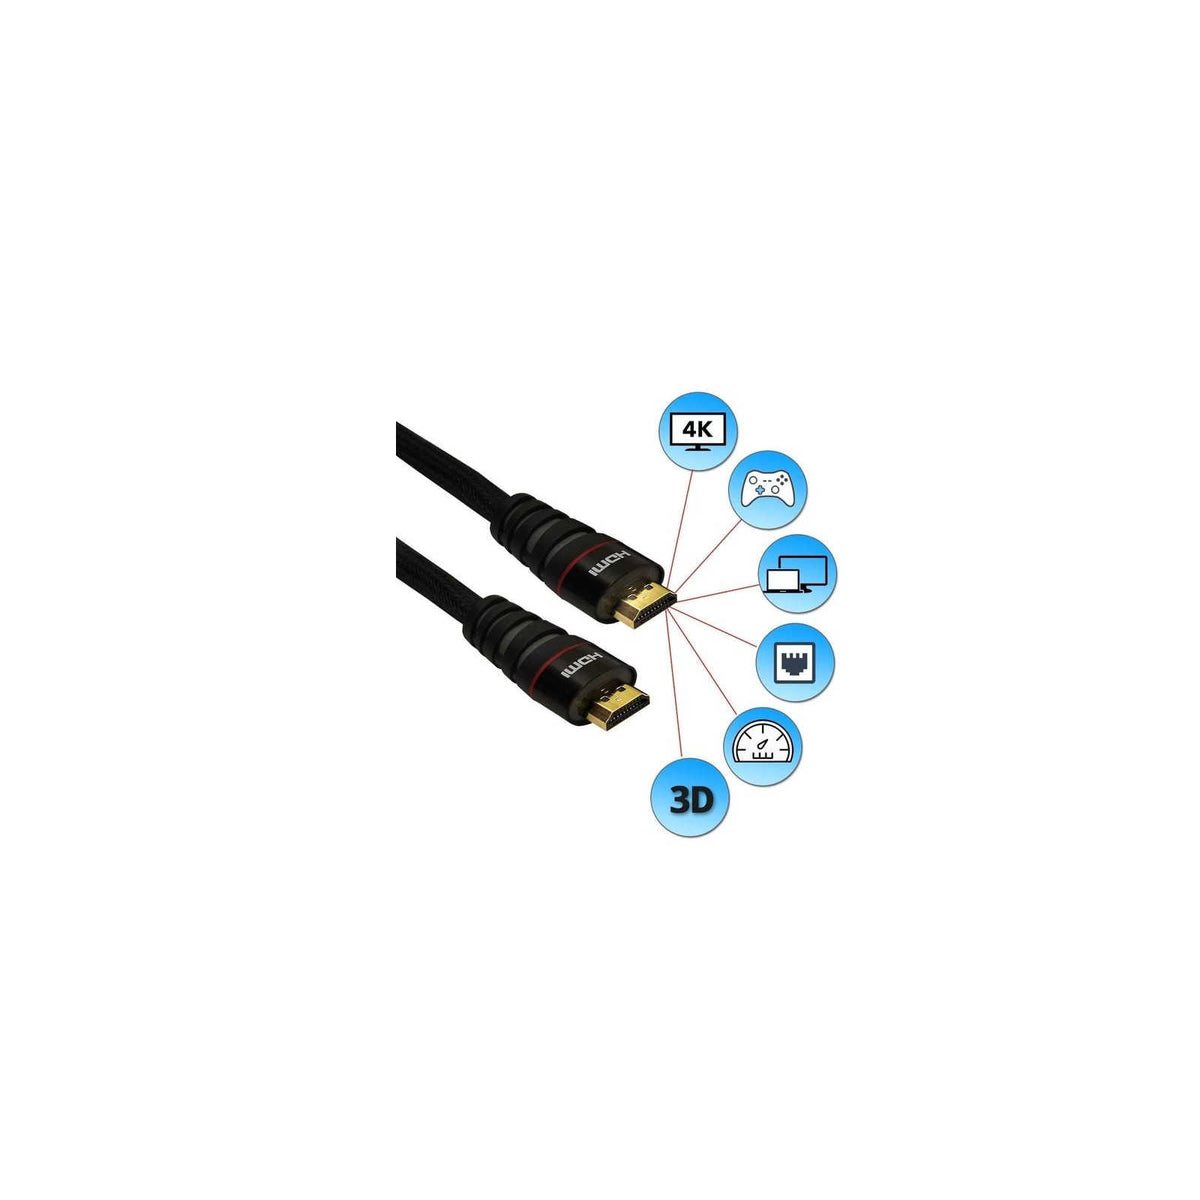 Buy HDMI Cable 10, 15 and 20 meter Online at Best Price in